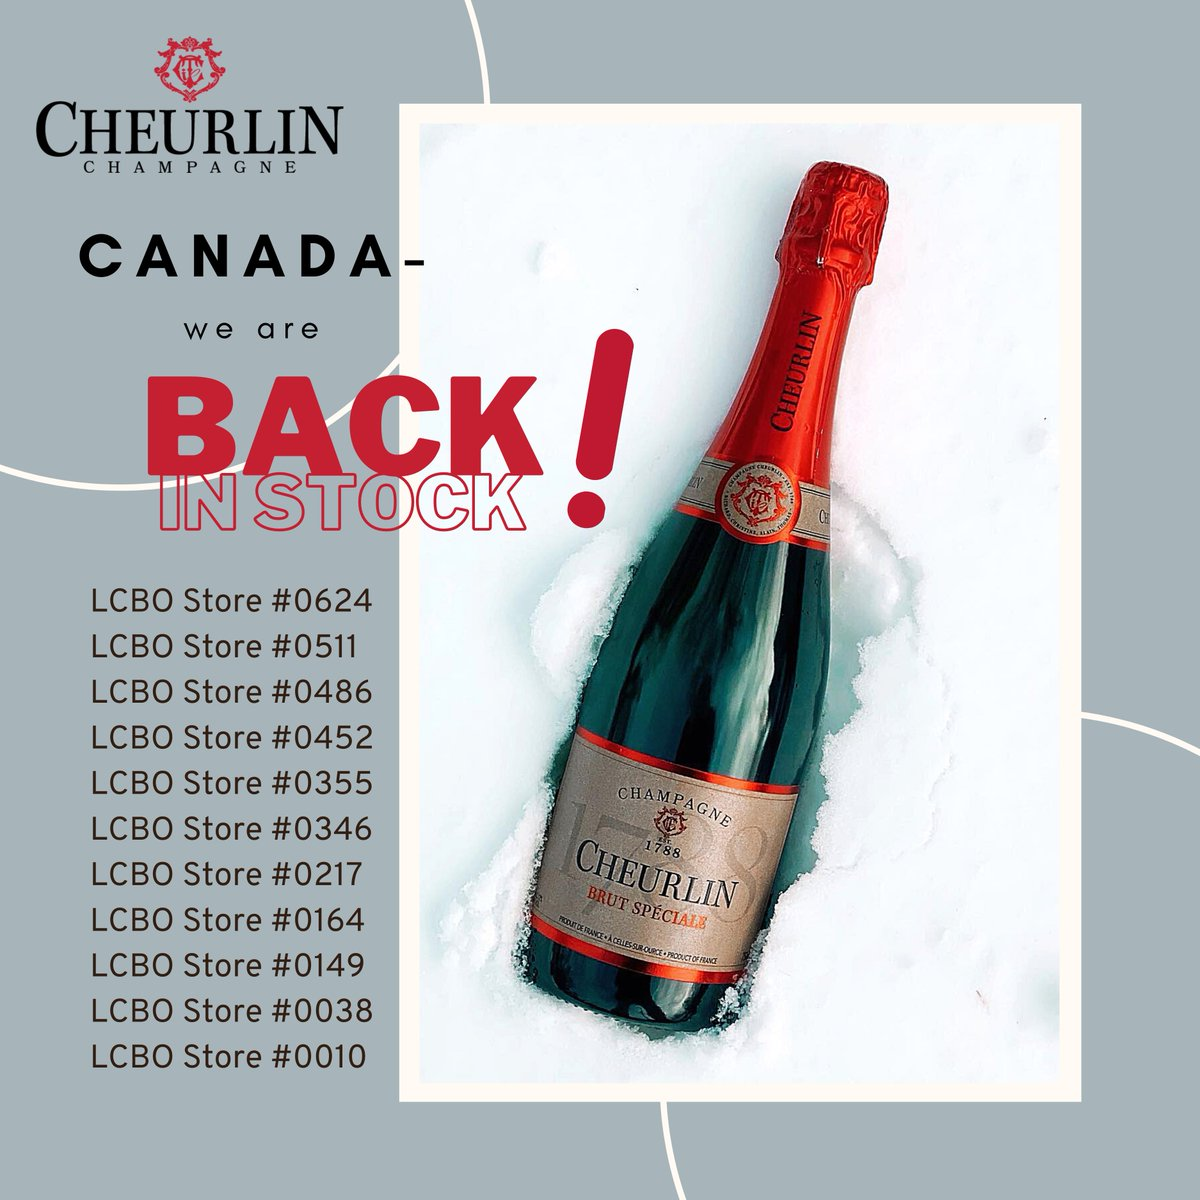 #Cheurlin1788 is currently back on the shelves again in some of the Toronto & Ottawa area LCBOs! Stay tuned for availability in the Ontario area by mid-June! #LCBO 🥂🍾🇨🇦